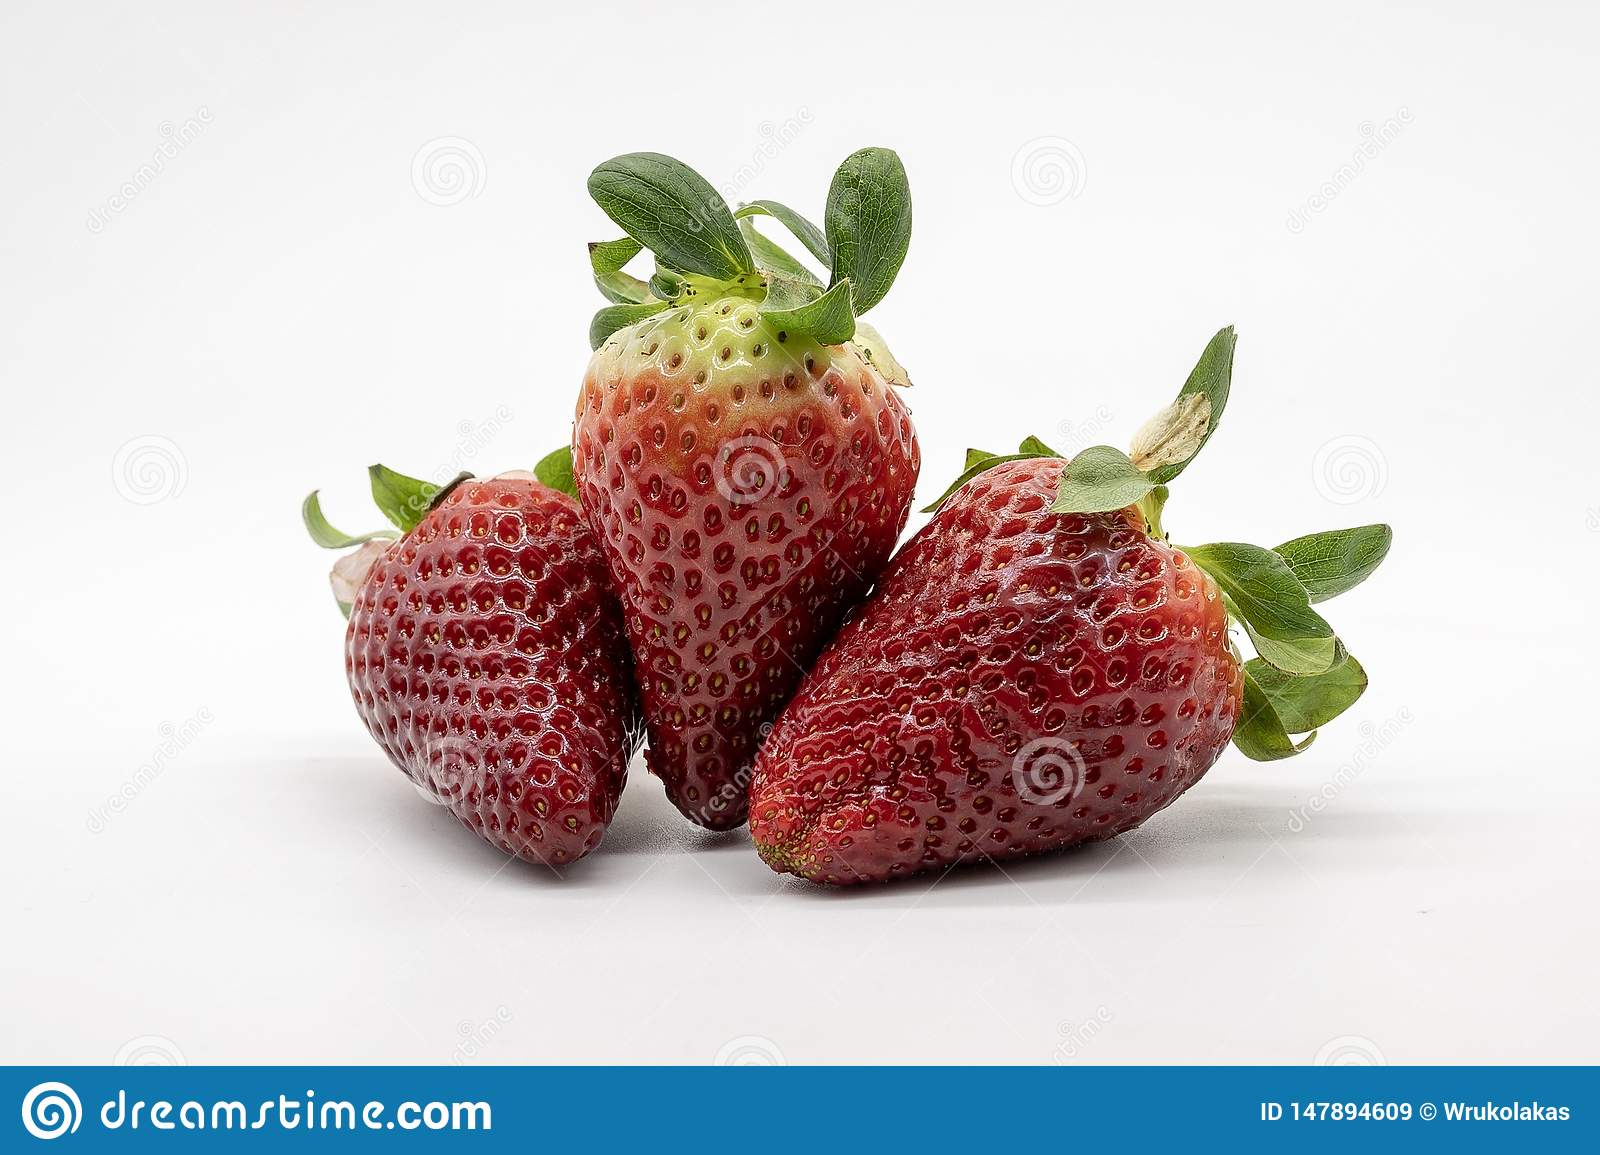 A hand full of strawberries